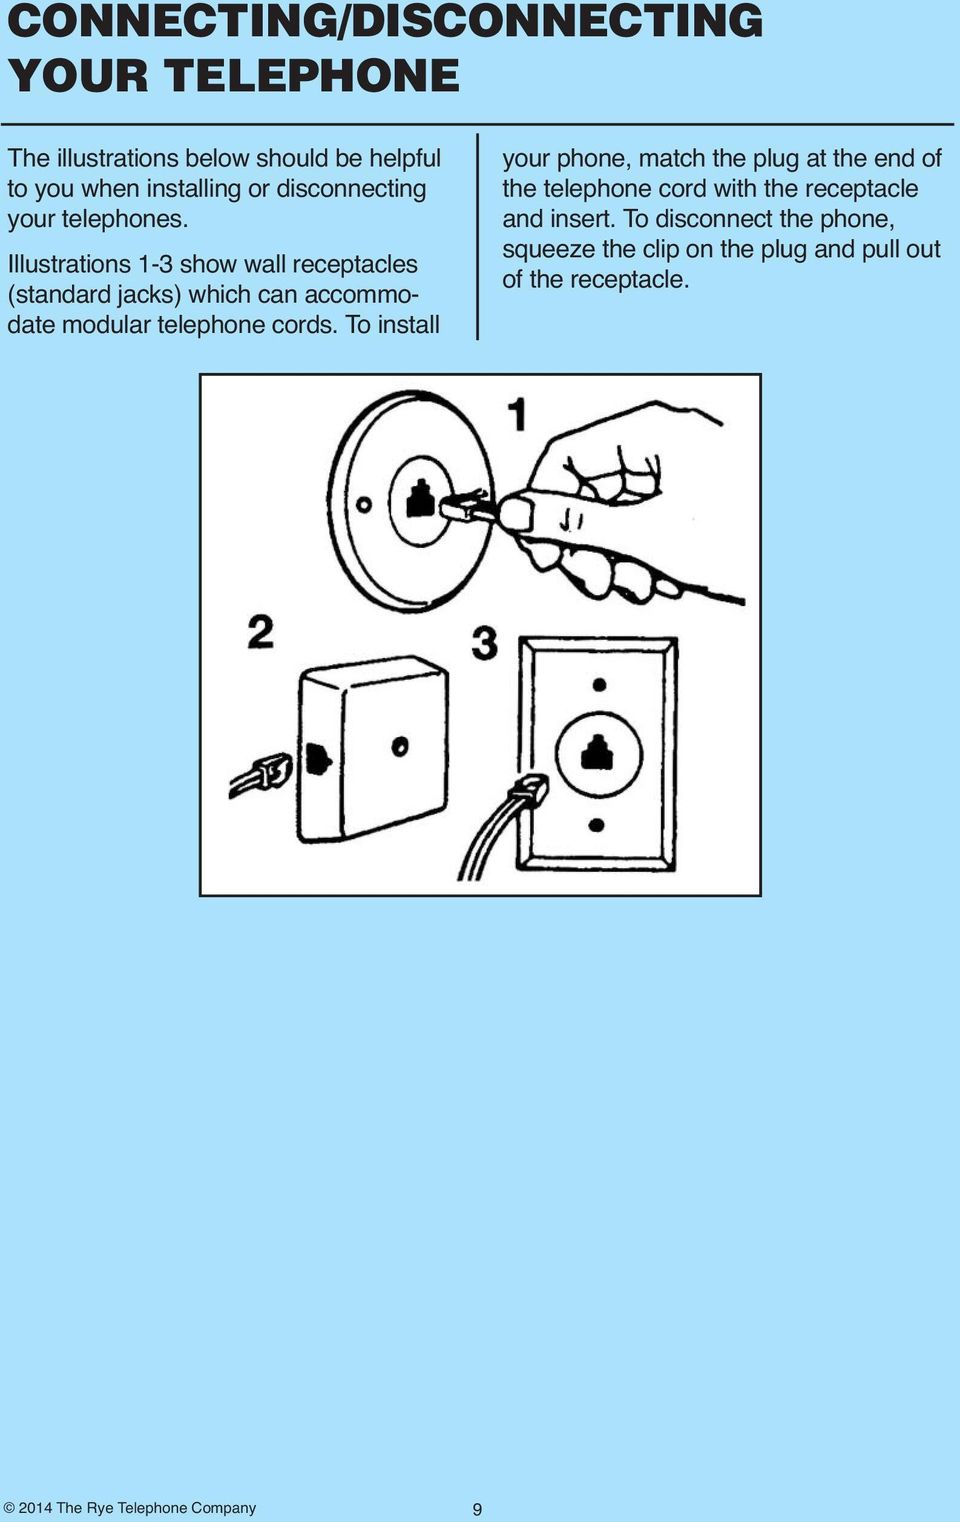 Illustrations 1-3 show wall receptacles (standard jacks) which can accommodate modular telephone cords.